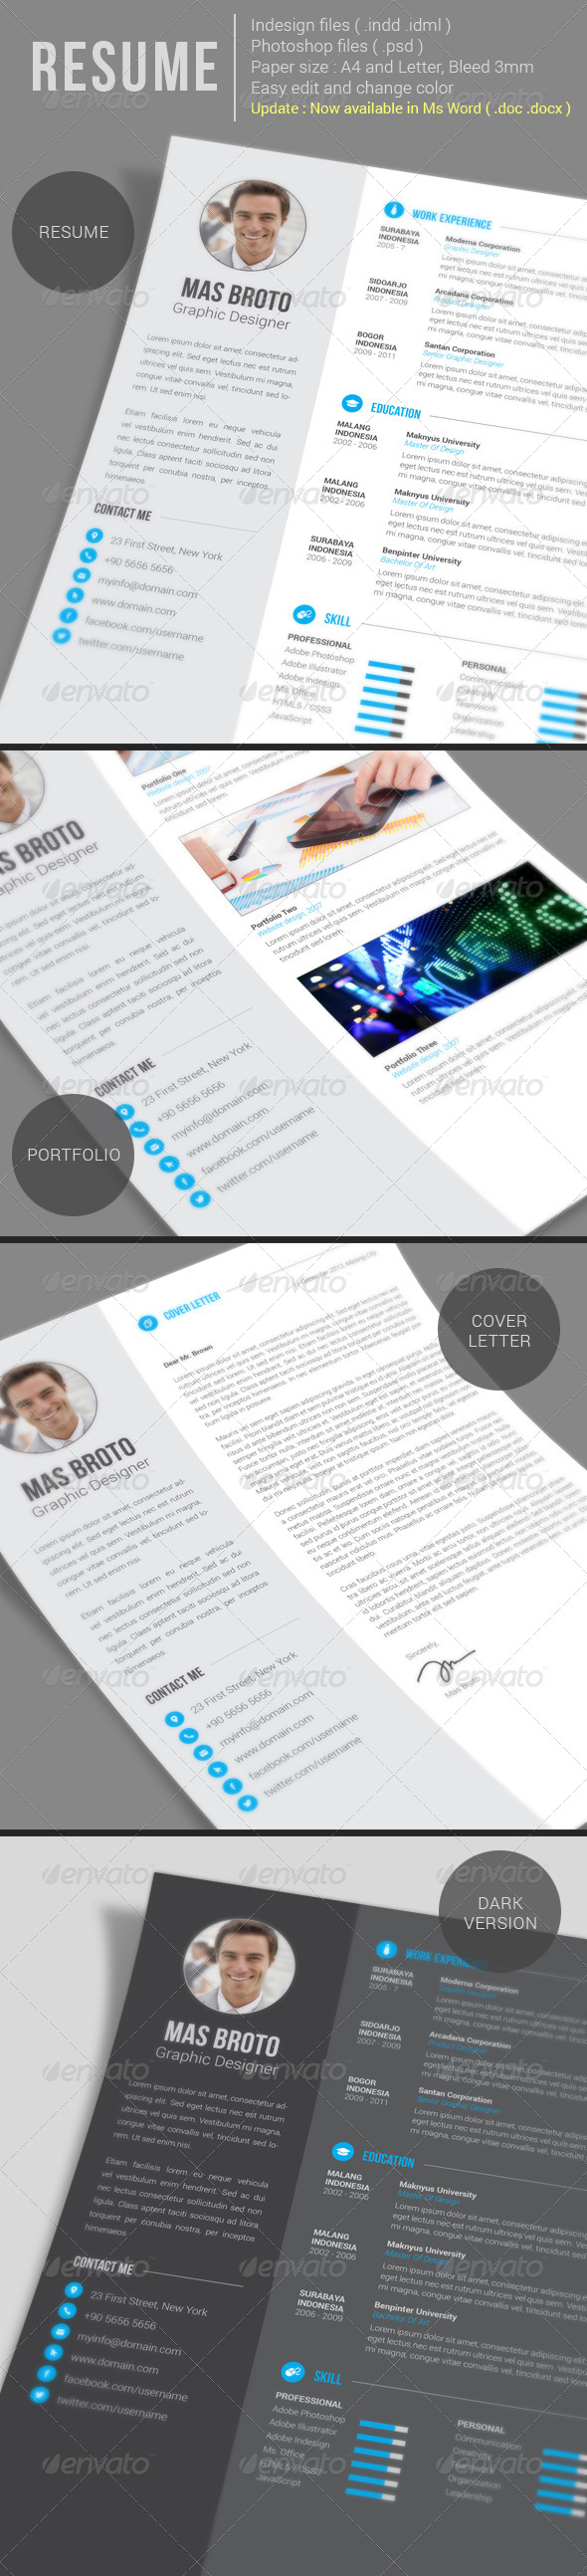 Graphicriver | Resume (update) Free Download free download Graphicriver | Resume (update) Free Download nulled Graphicriver | Resume (update) Free Download